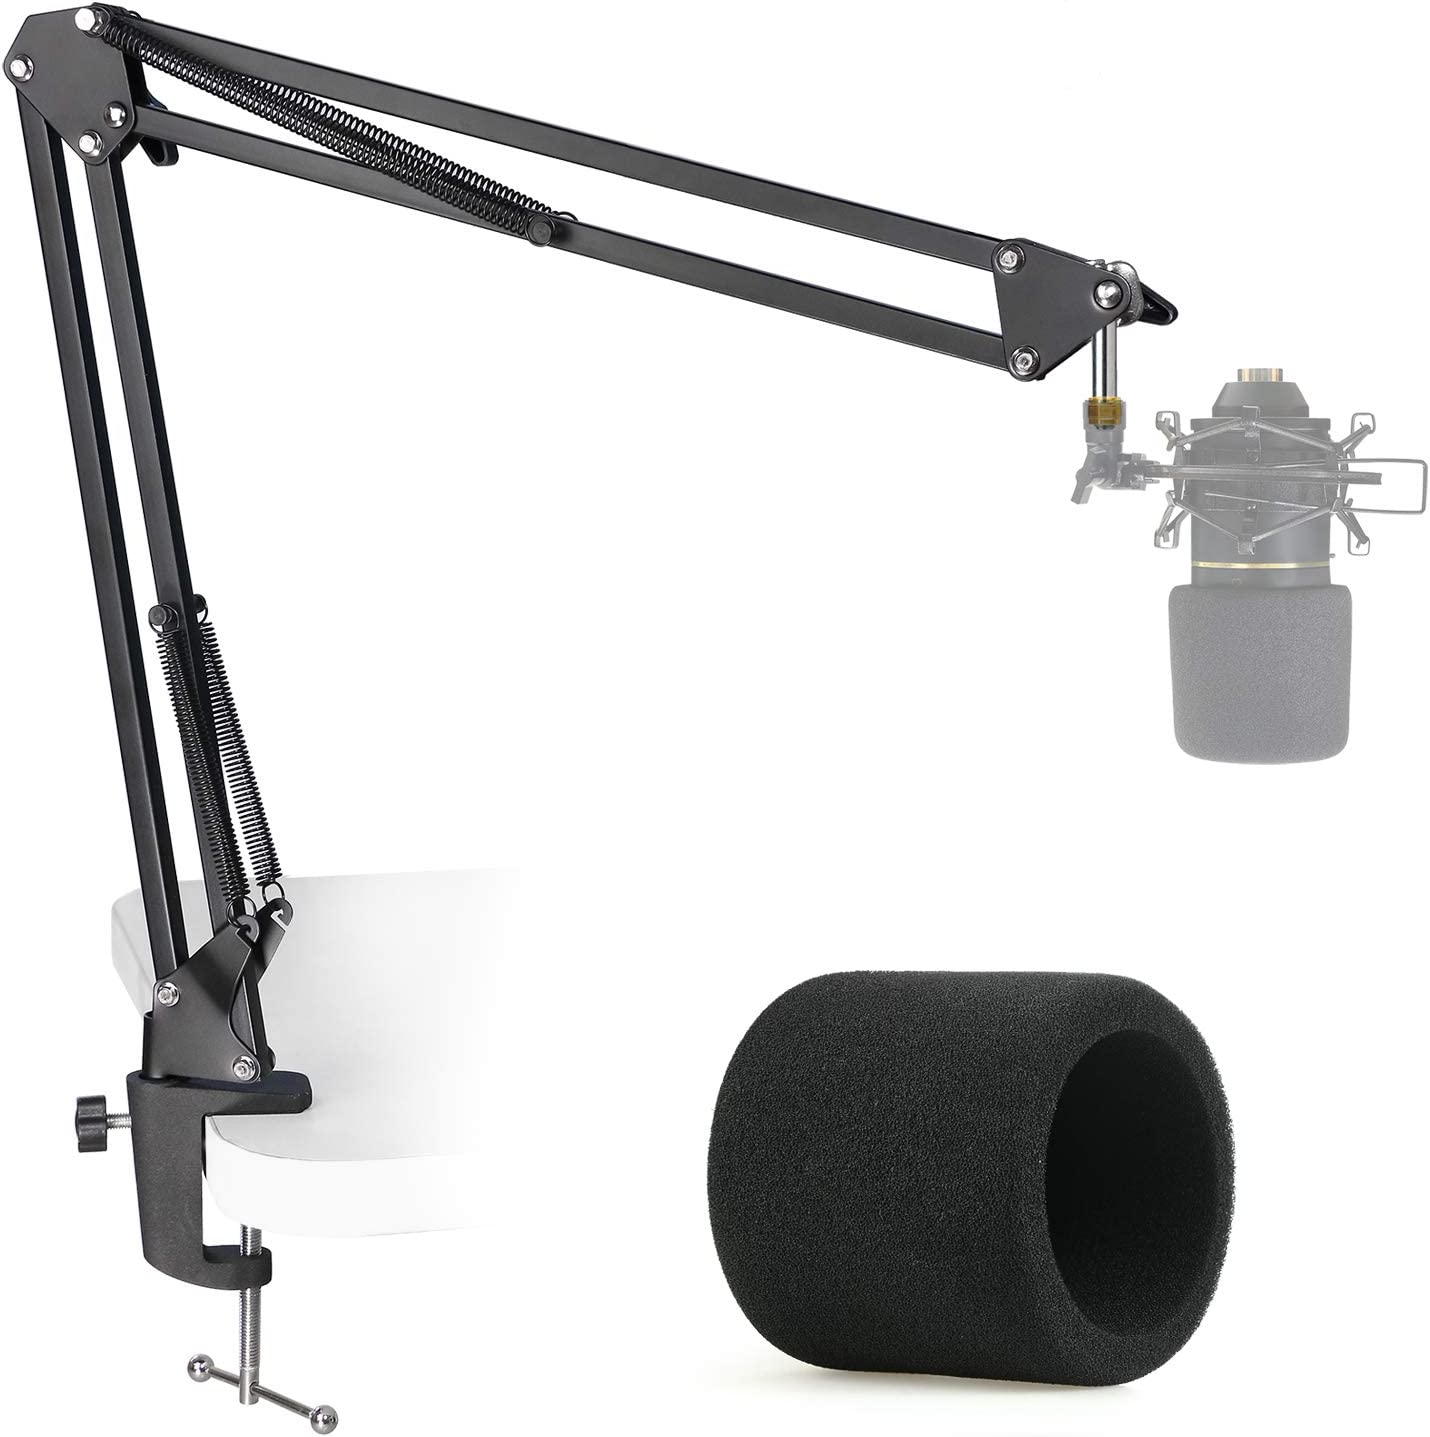 MXL 770 990 Sales results No. 1 Microphone Stand with Mic - Bo Time sale Pop Filter Suspension